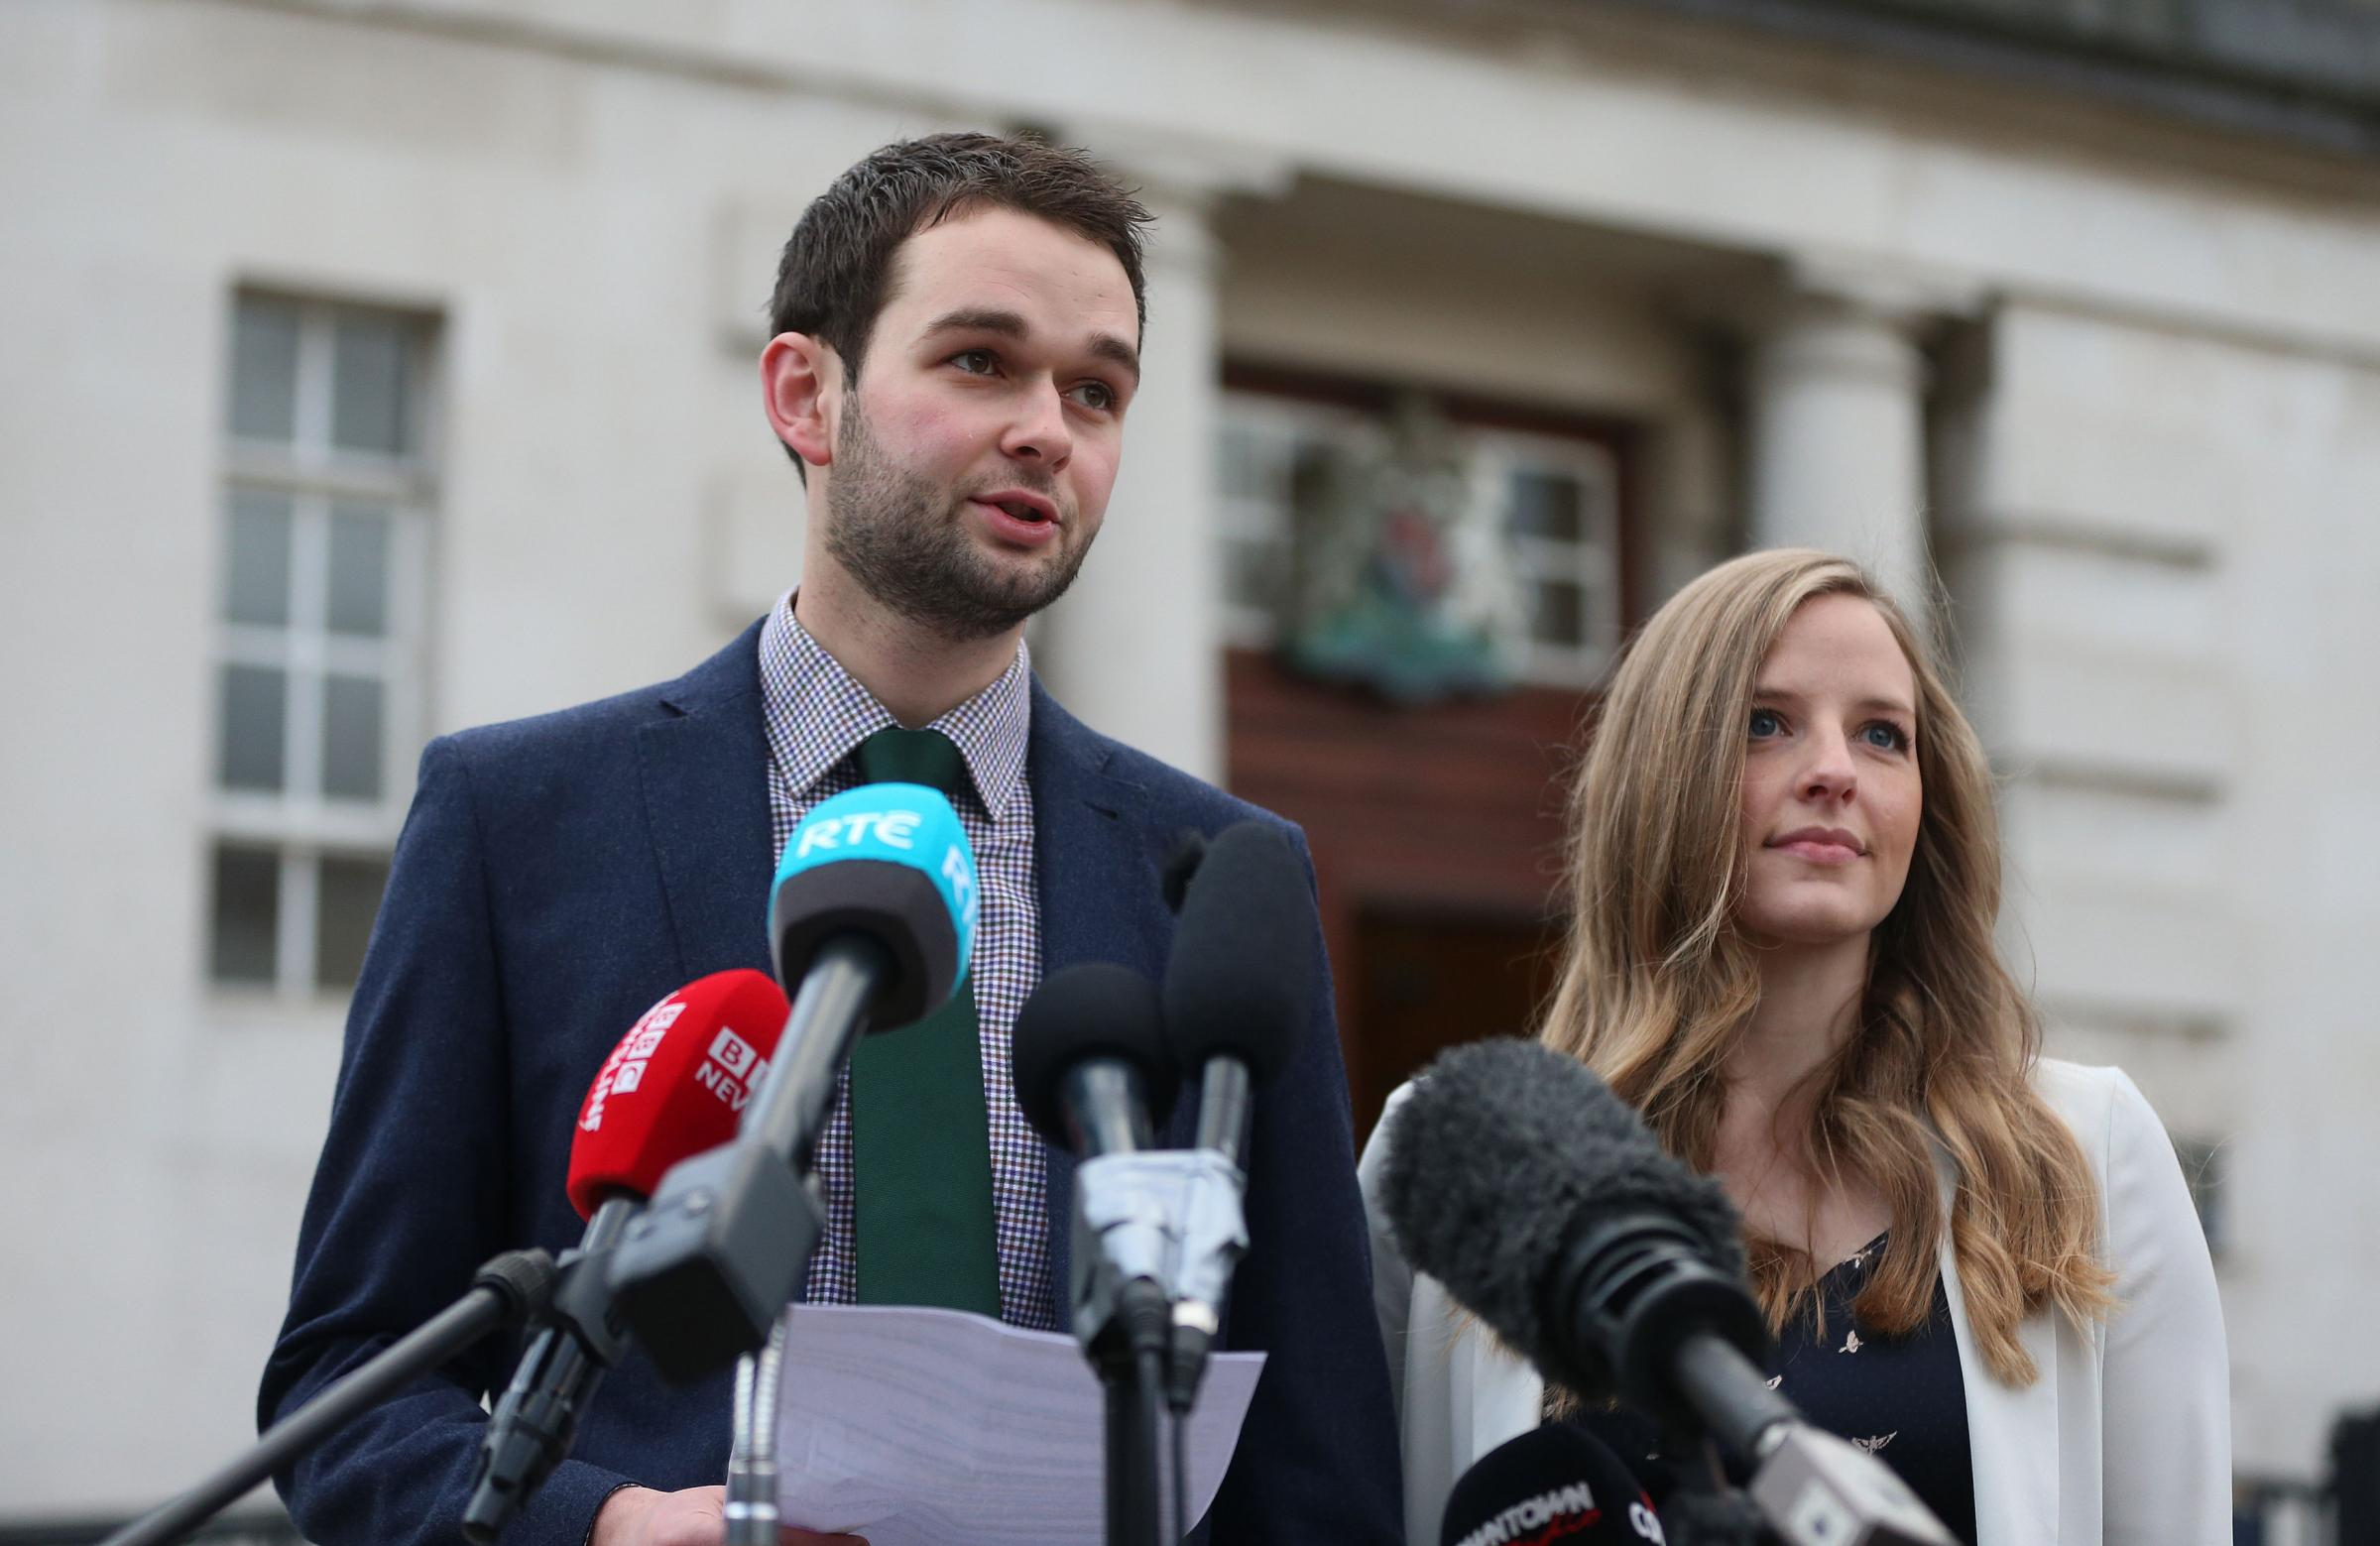 File photo dated 00/00/00   File photo dated 24/10/16 of Daniel and Amy McArthur of Ashers Baking Company. The UK's highest court is to give its ruling on whether the Christian owners of theÊbakery discriminated against a customer by refusing to